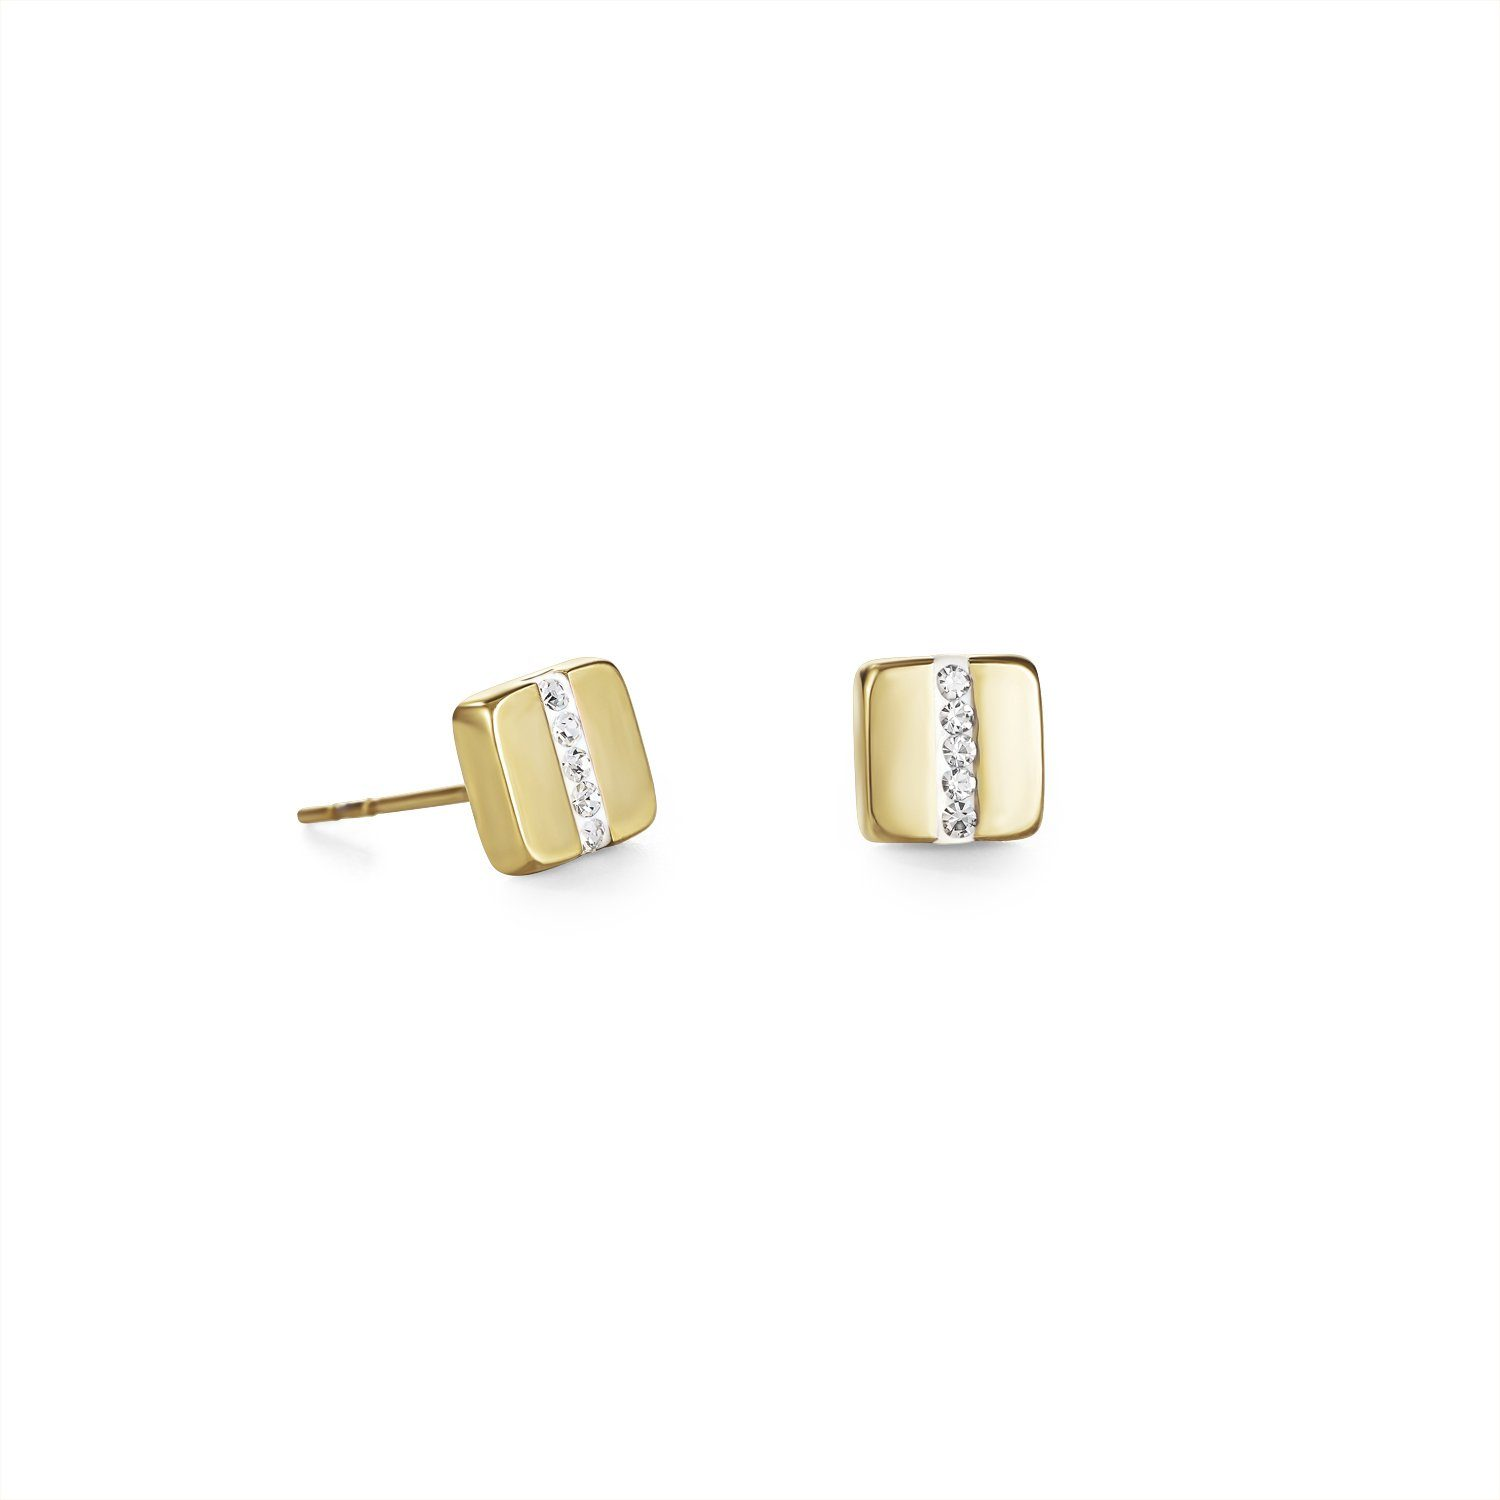 Pavé Crystal Gold Square Stud Earrings 0325/21-1800 Jewellery Coeur de Lion